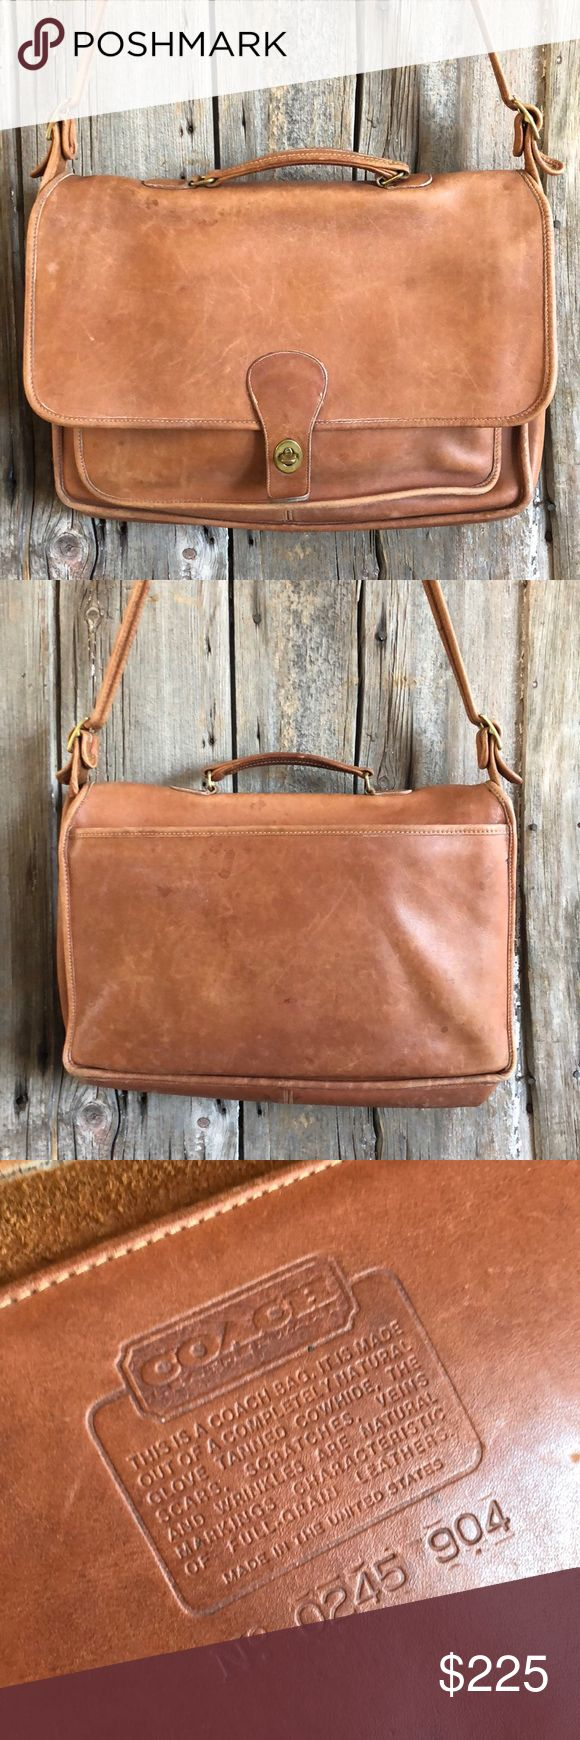 COACH Messenger Bag Vintage COACH Camel Colored Leather Messenger Bag. Has Some Stains But Nothing That Doesn't Add To Ots Character and Vintage Charm. Coach Bags